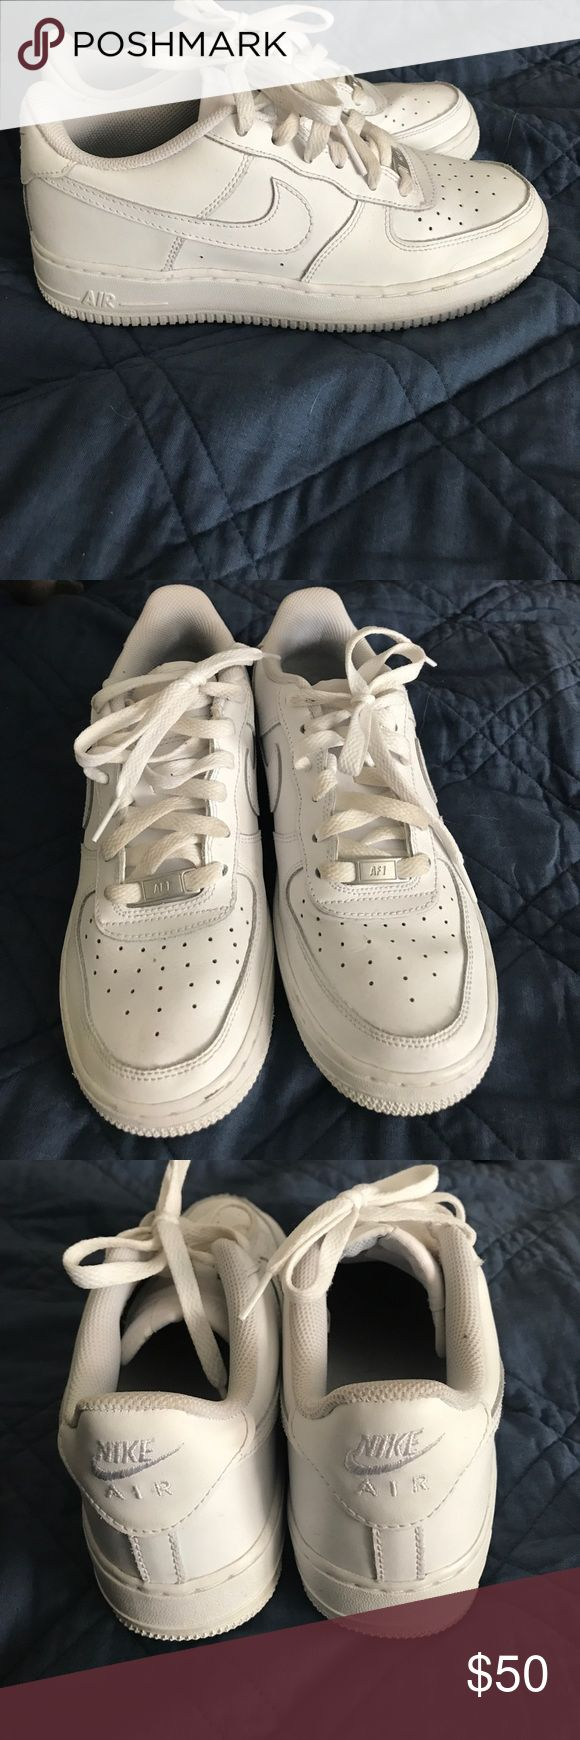 Nike Shoes All white Nike Air Force 1's. Size 6Y but fit a women's size 6 or 6 1/2 Nike Shoes